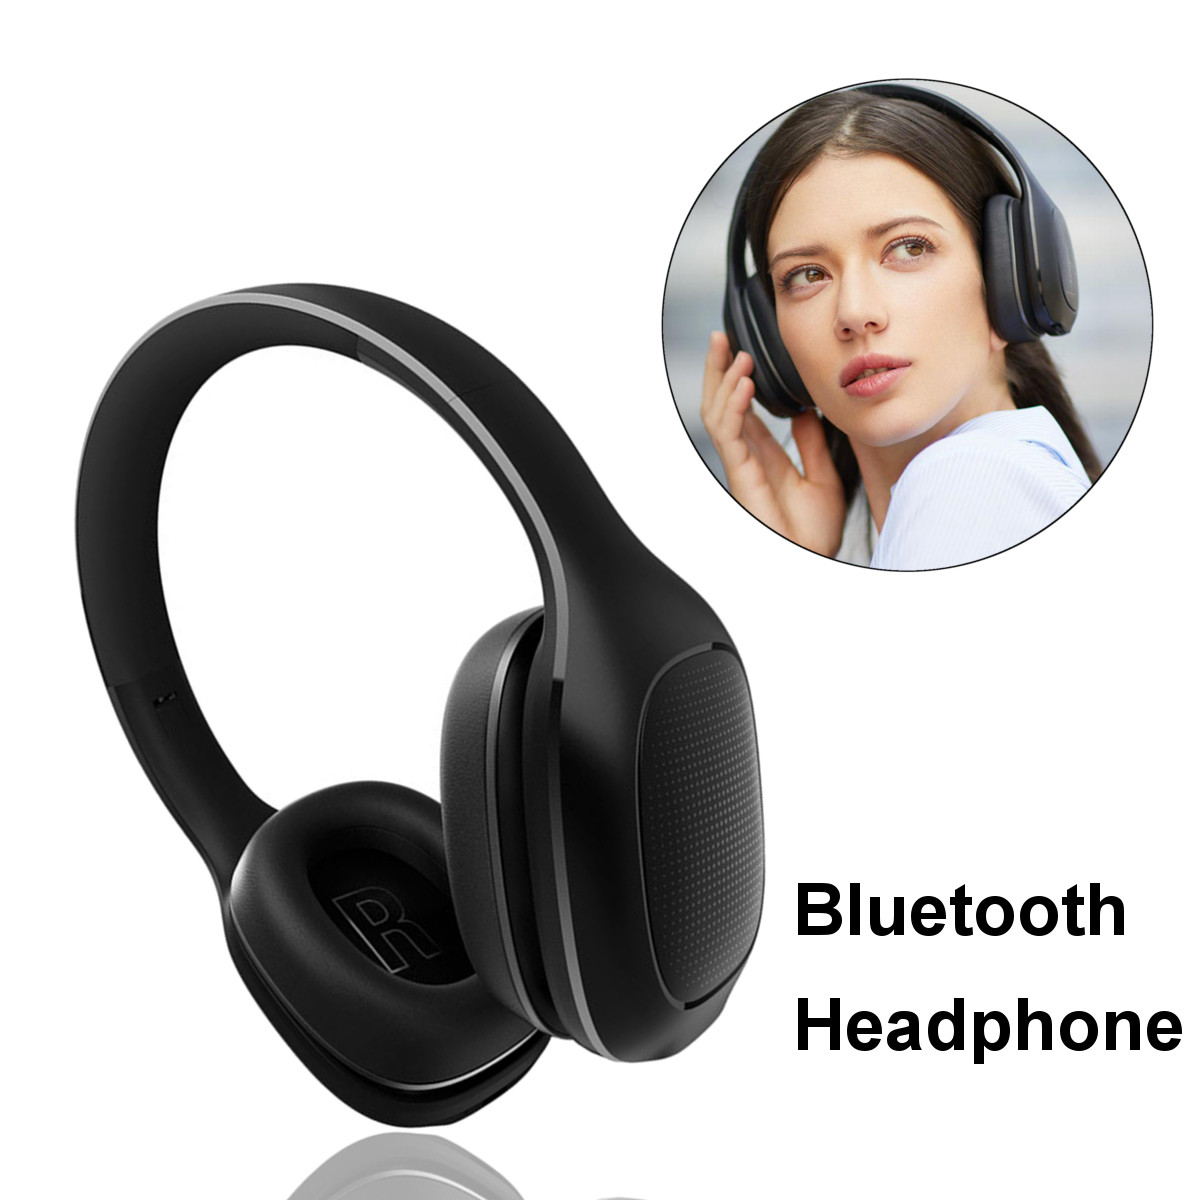 Wireless Headphones 4.1 Version bluetooth 40mm Dynamic Headphone for sumsamg for sumsamg phone tablet PC Computer Game HeadsetWireless Headphones 4.1 Version bluetooth 40mm Dynamic Headphone for sumsamg for sumsamg phone tablet PC Computer Game Headset